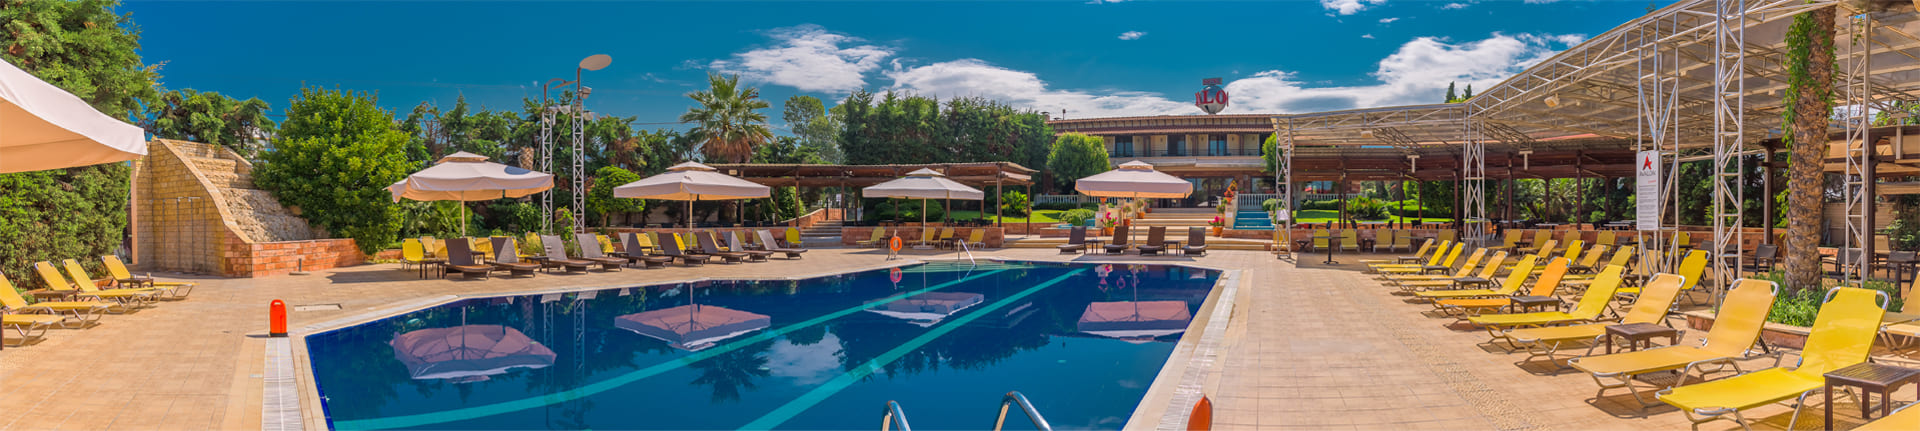 hotel-home-footer-pool1